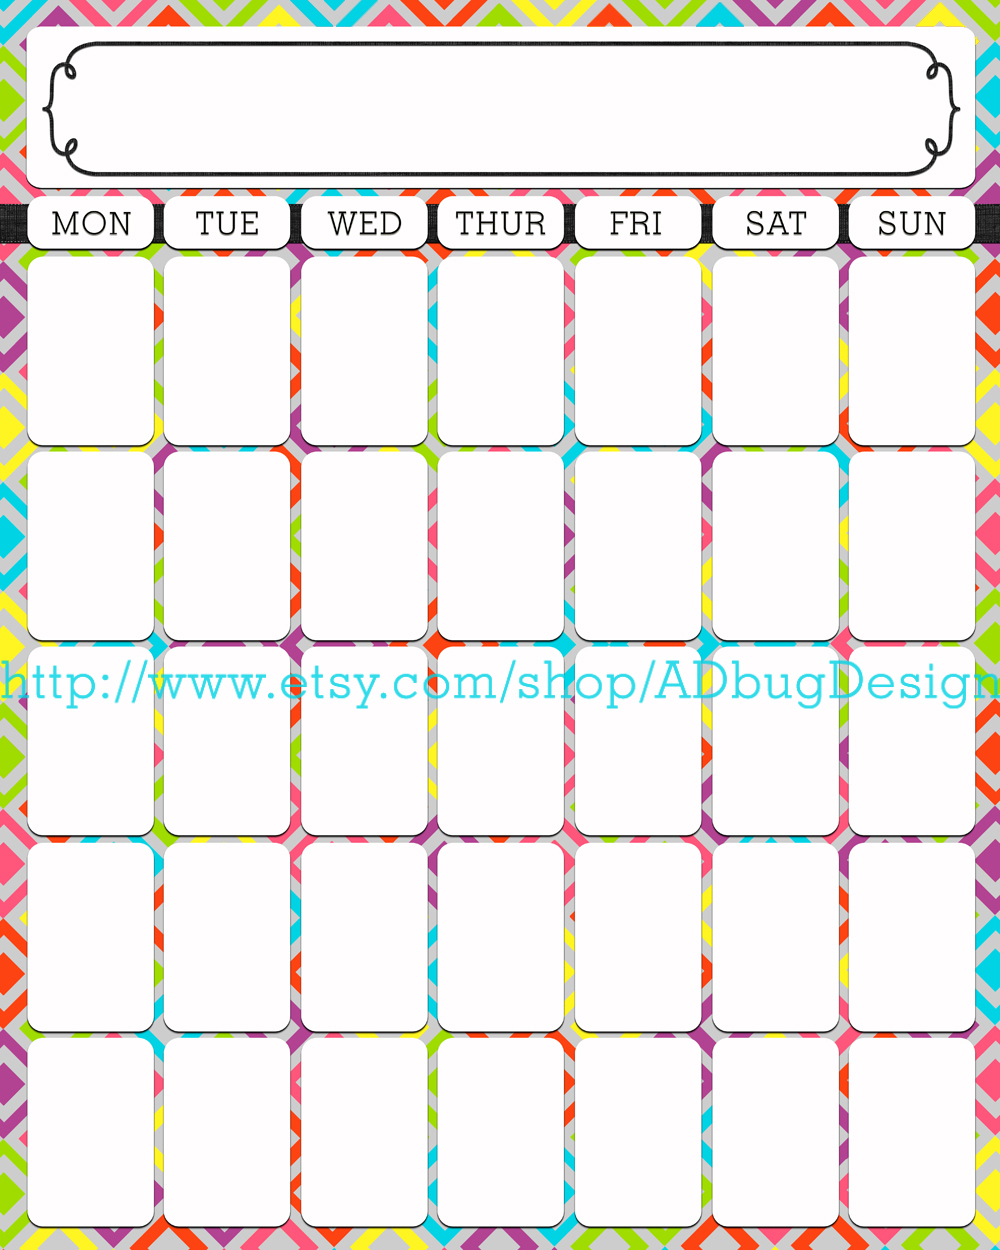 Calendar Days : Adbug photography calendar template